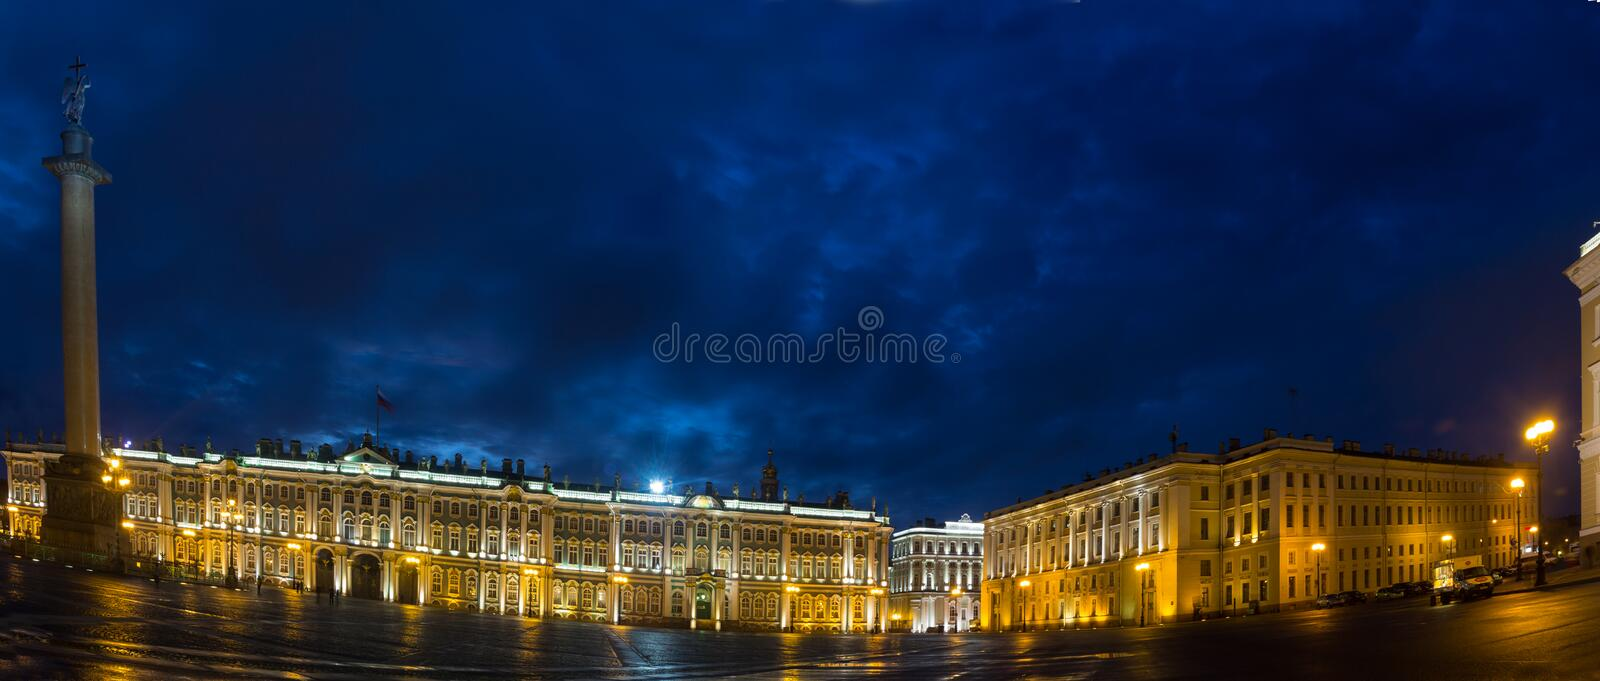 Palace square, St. Petersburg, Russia. The evening on Palace square in St. Petersburg royalty free stock photo